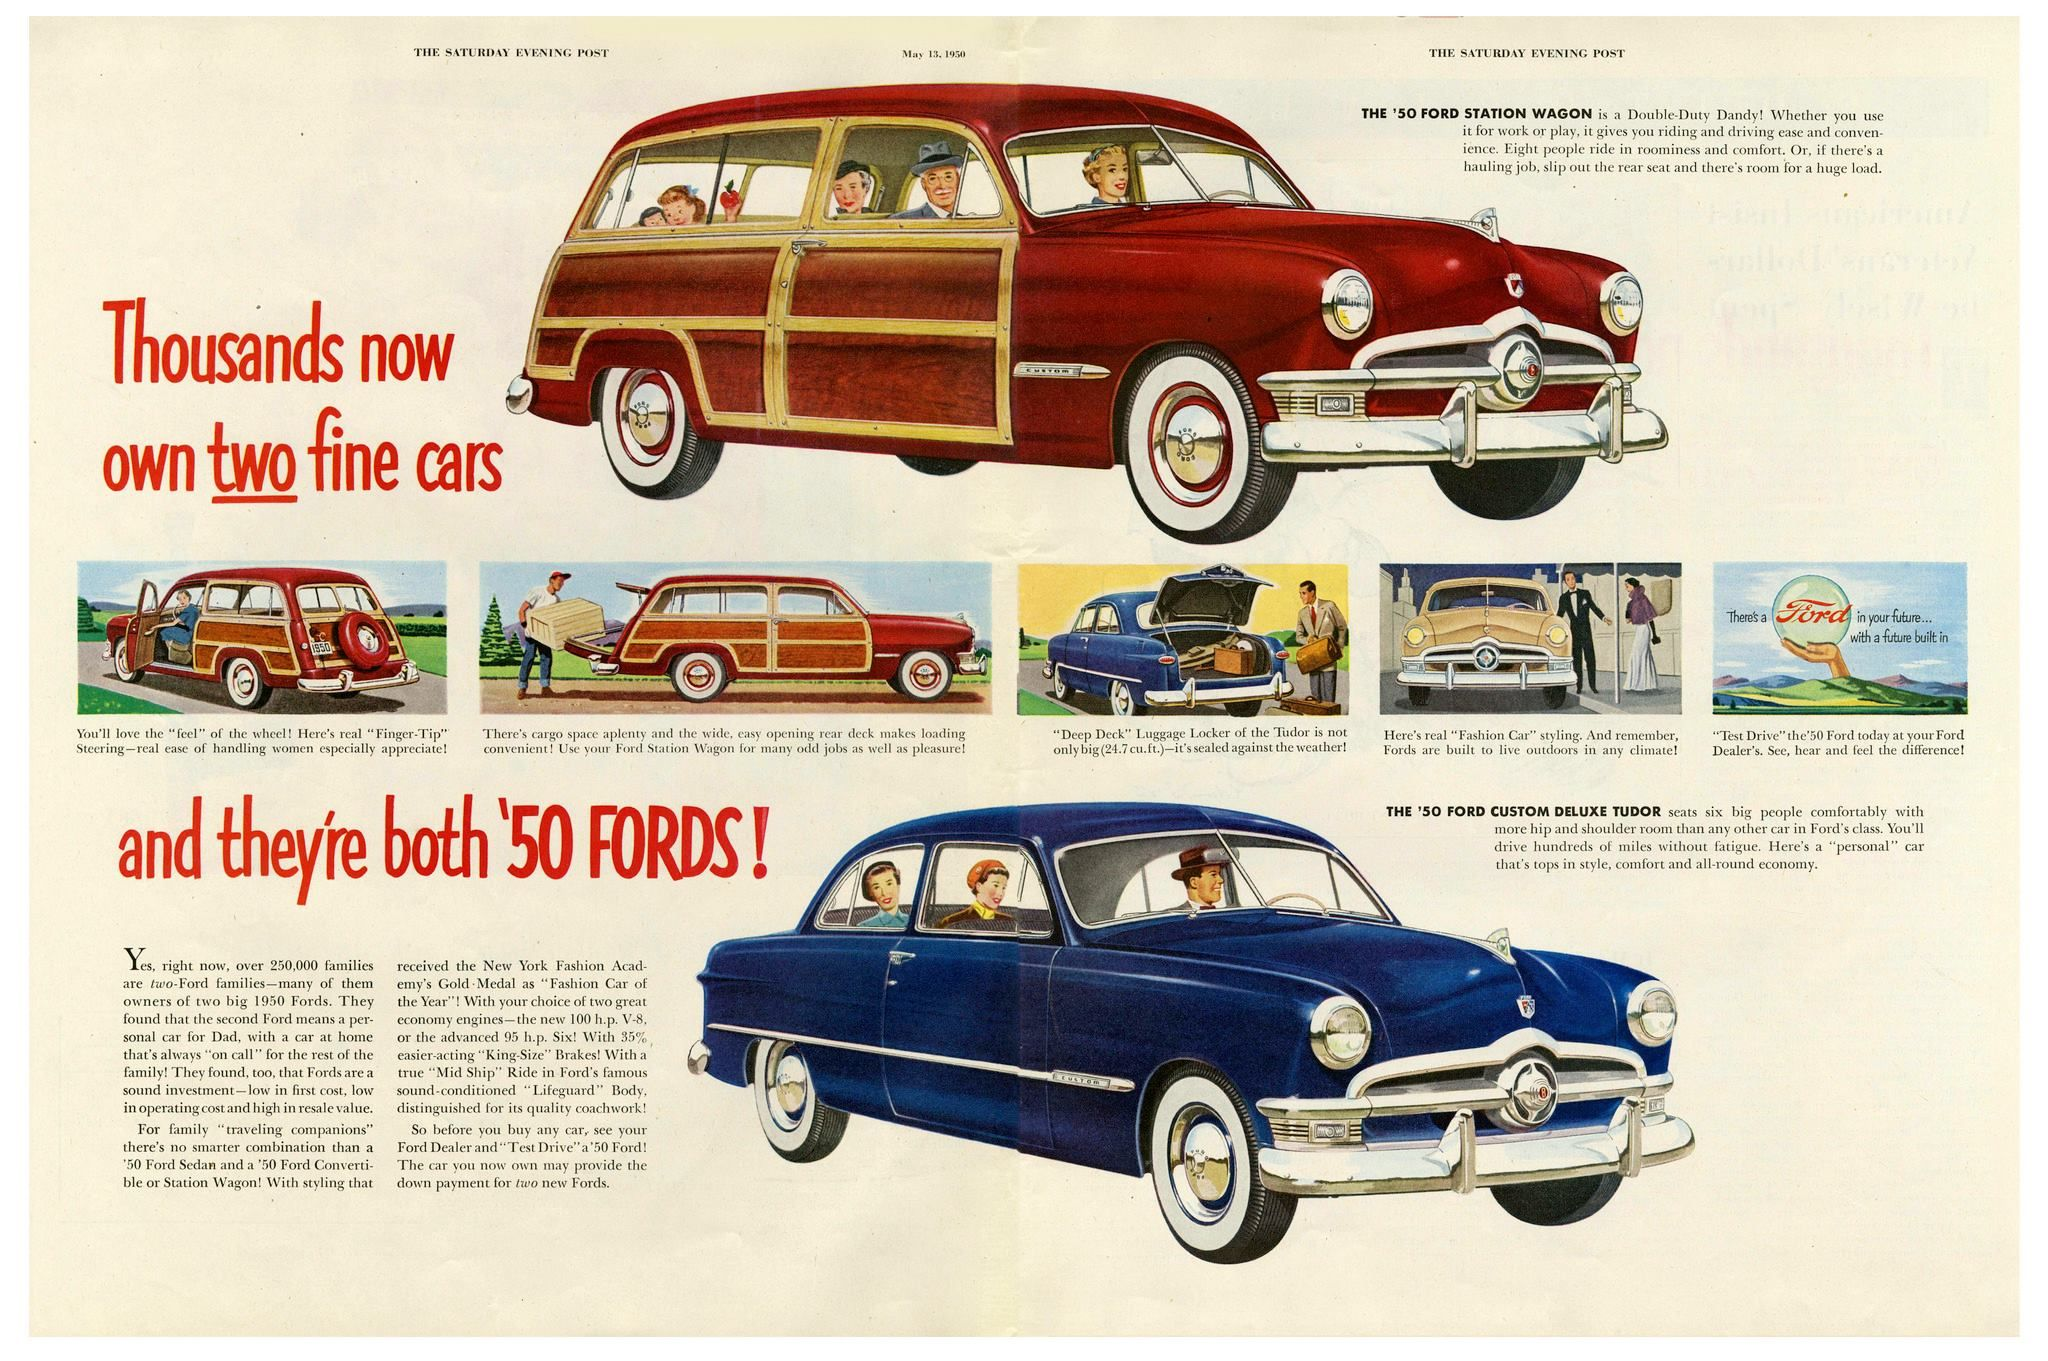 Pin by Fred Bassett on Vintage Auto Ads | Pinterest | Ford and Cars